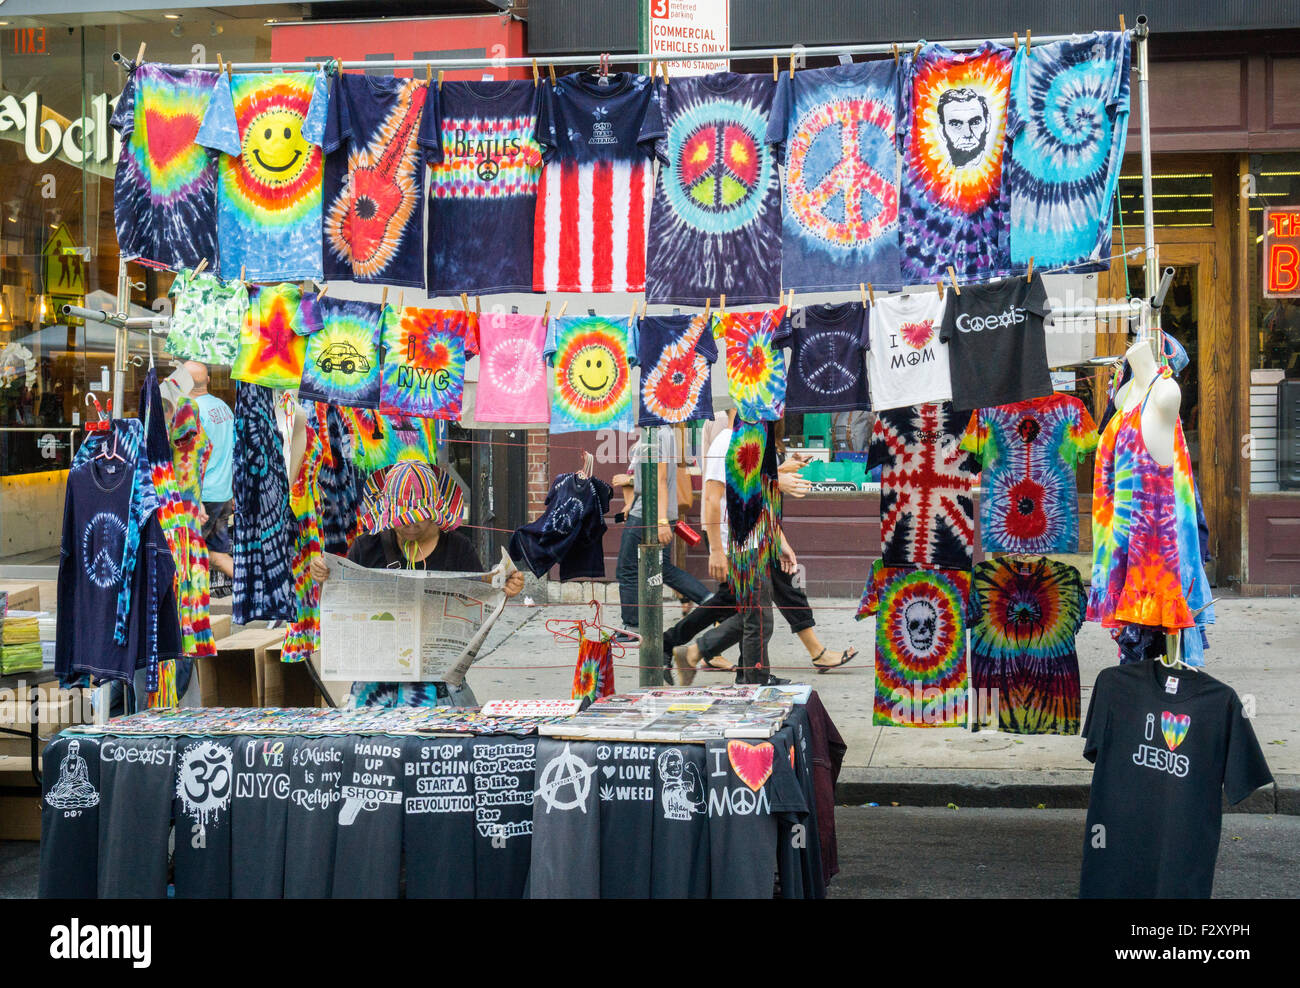 A vendor selling 70 and 80's themed tee shirts and other merchandise at a street fair in New York on Saturday, - Stock Image